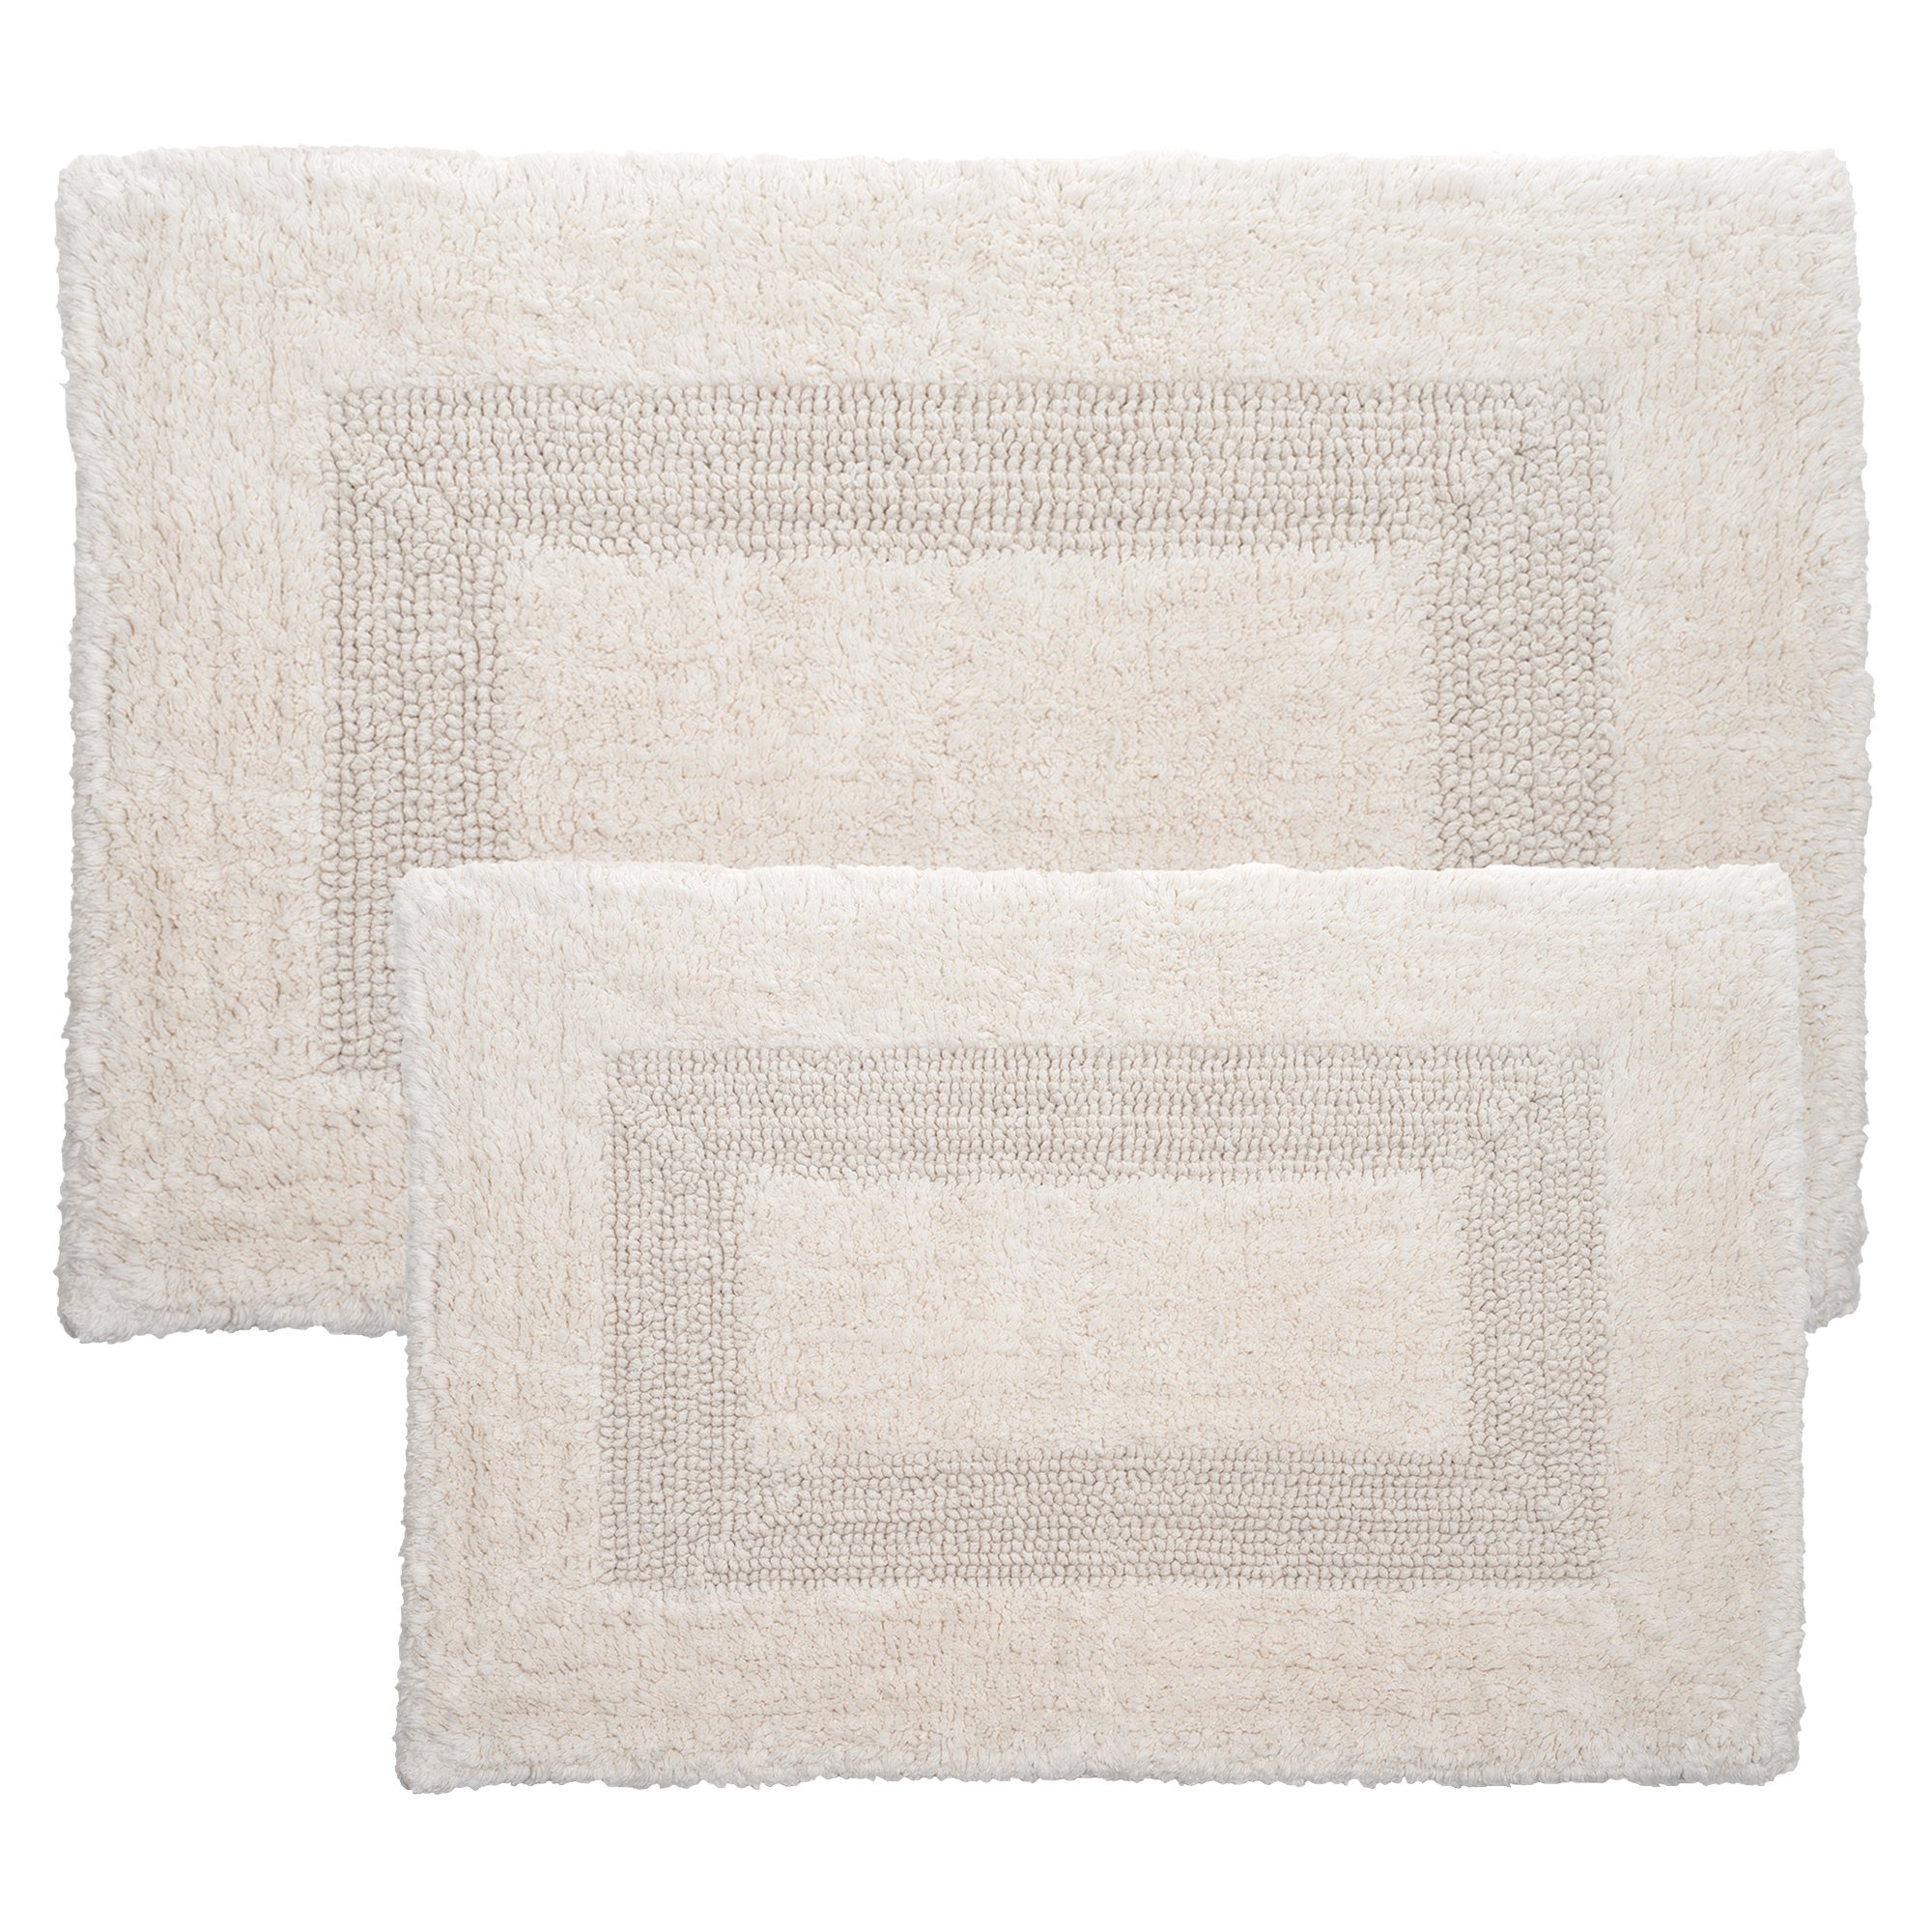 Permalink to Reversible Bathroom Rugs Sets